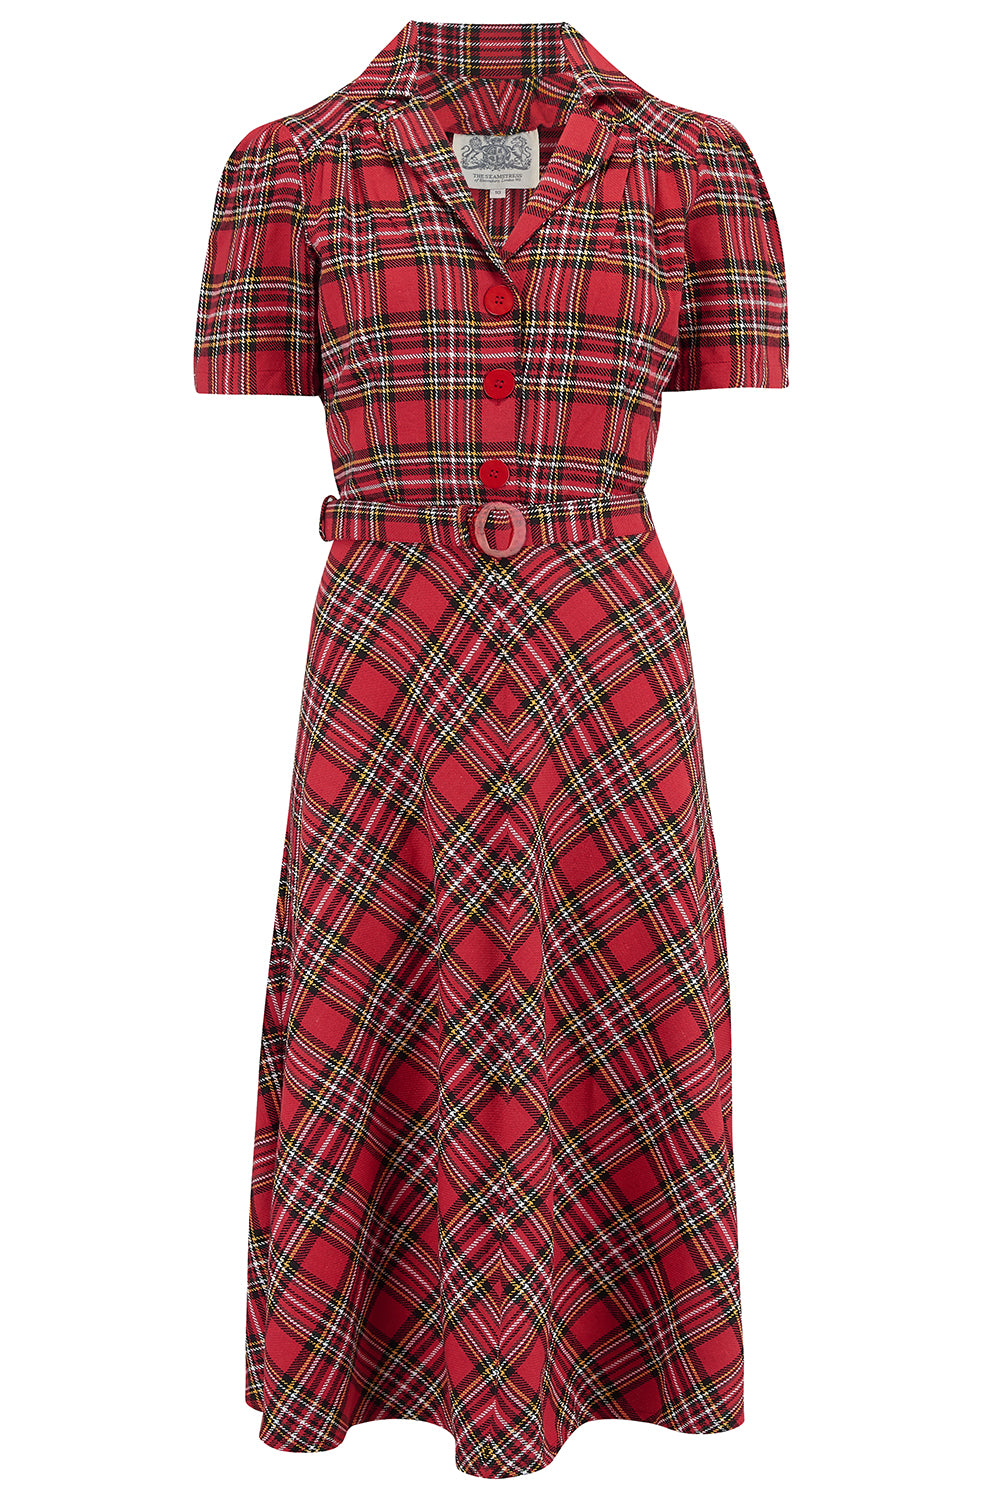 1930s Dresses | 30s Art Deco Dress Lisa Tea Dress in Traditional Red Tartan Authentic 1940s Vintage Style £79.00 AT vintagedancer.com